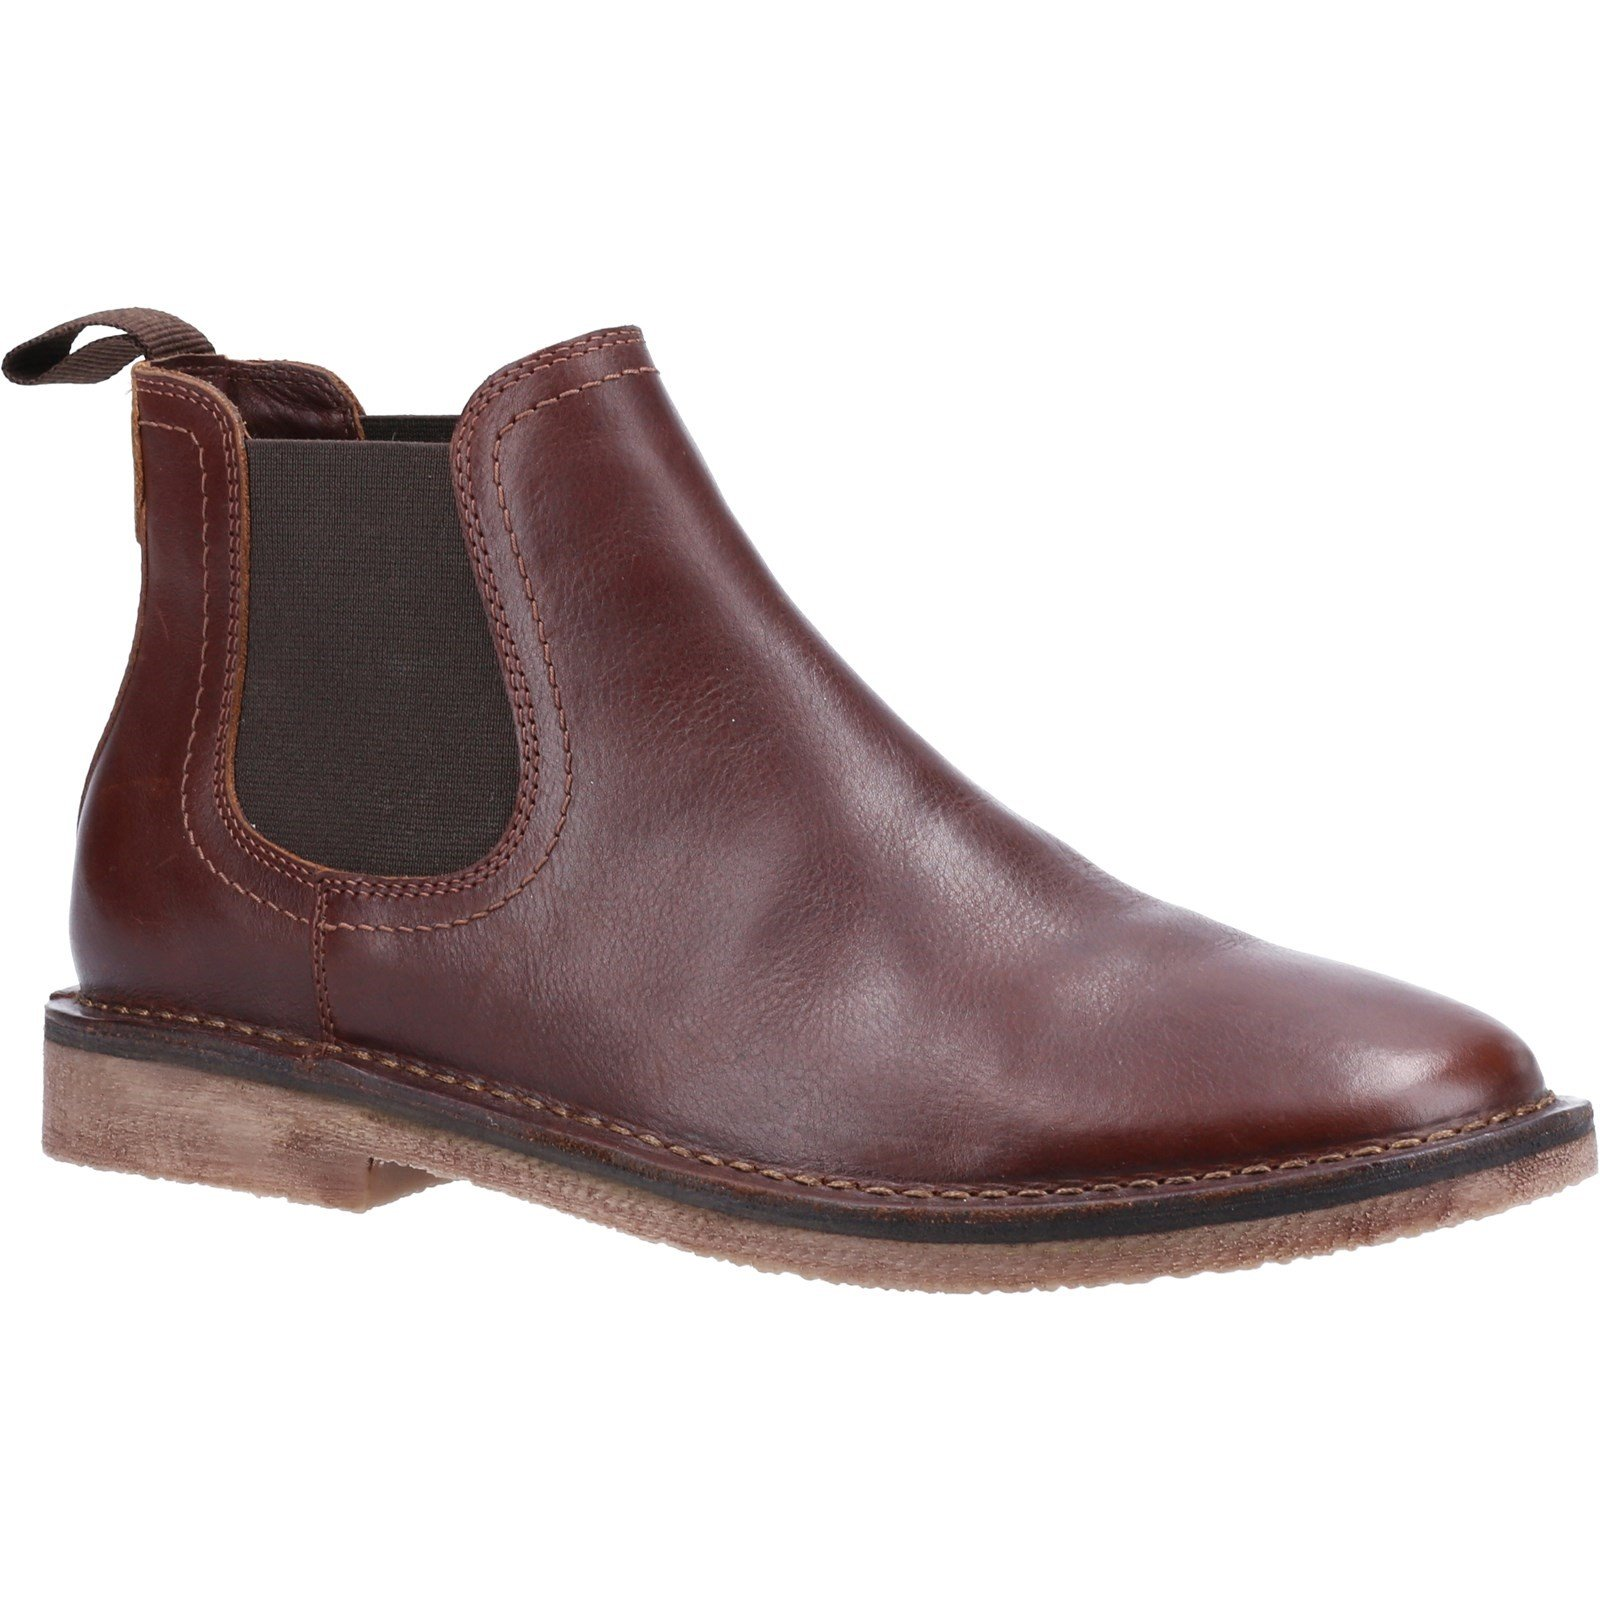 Hush Puppies Men's Shaun Leather Chelsea Boot Various Colours 32897 - Brown 9